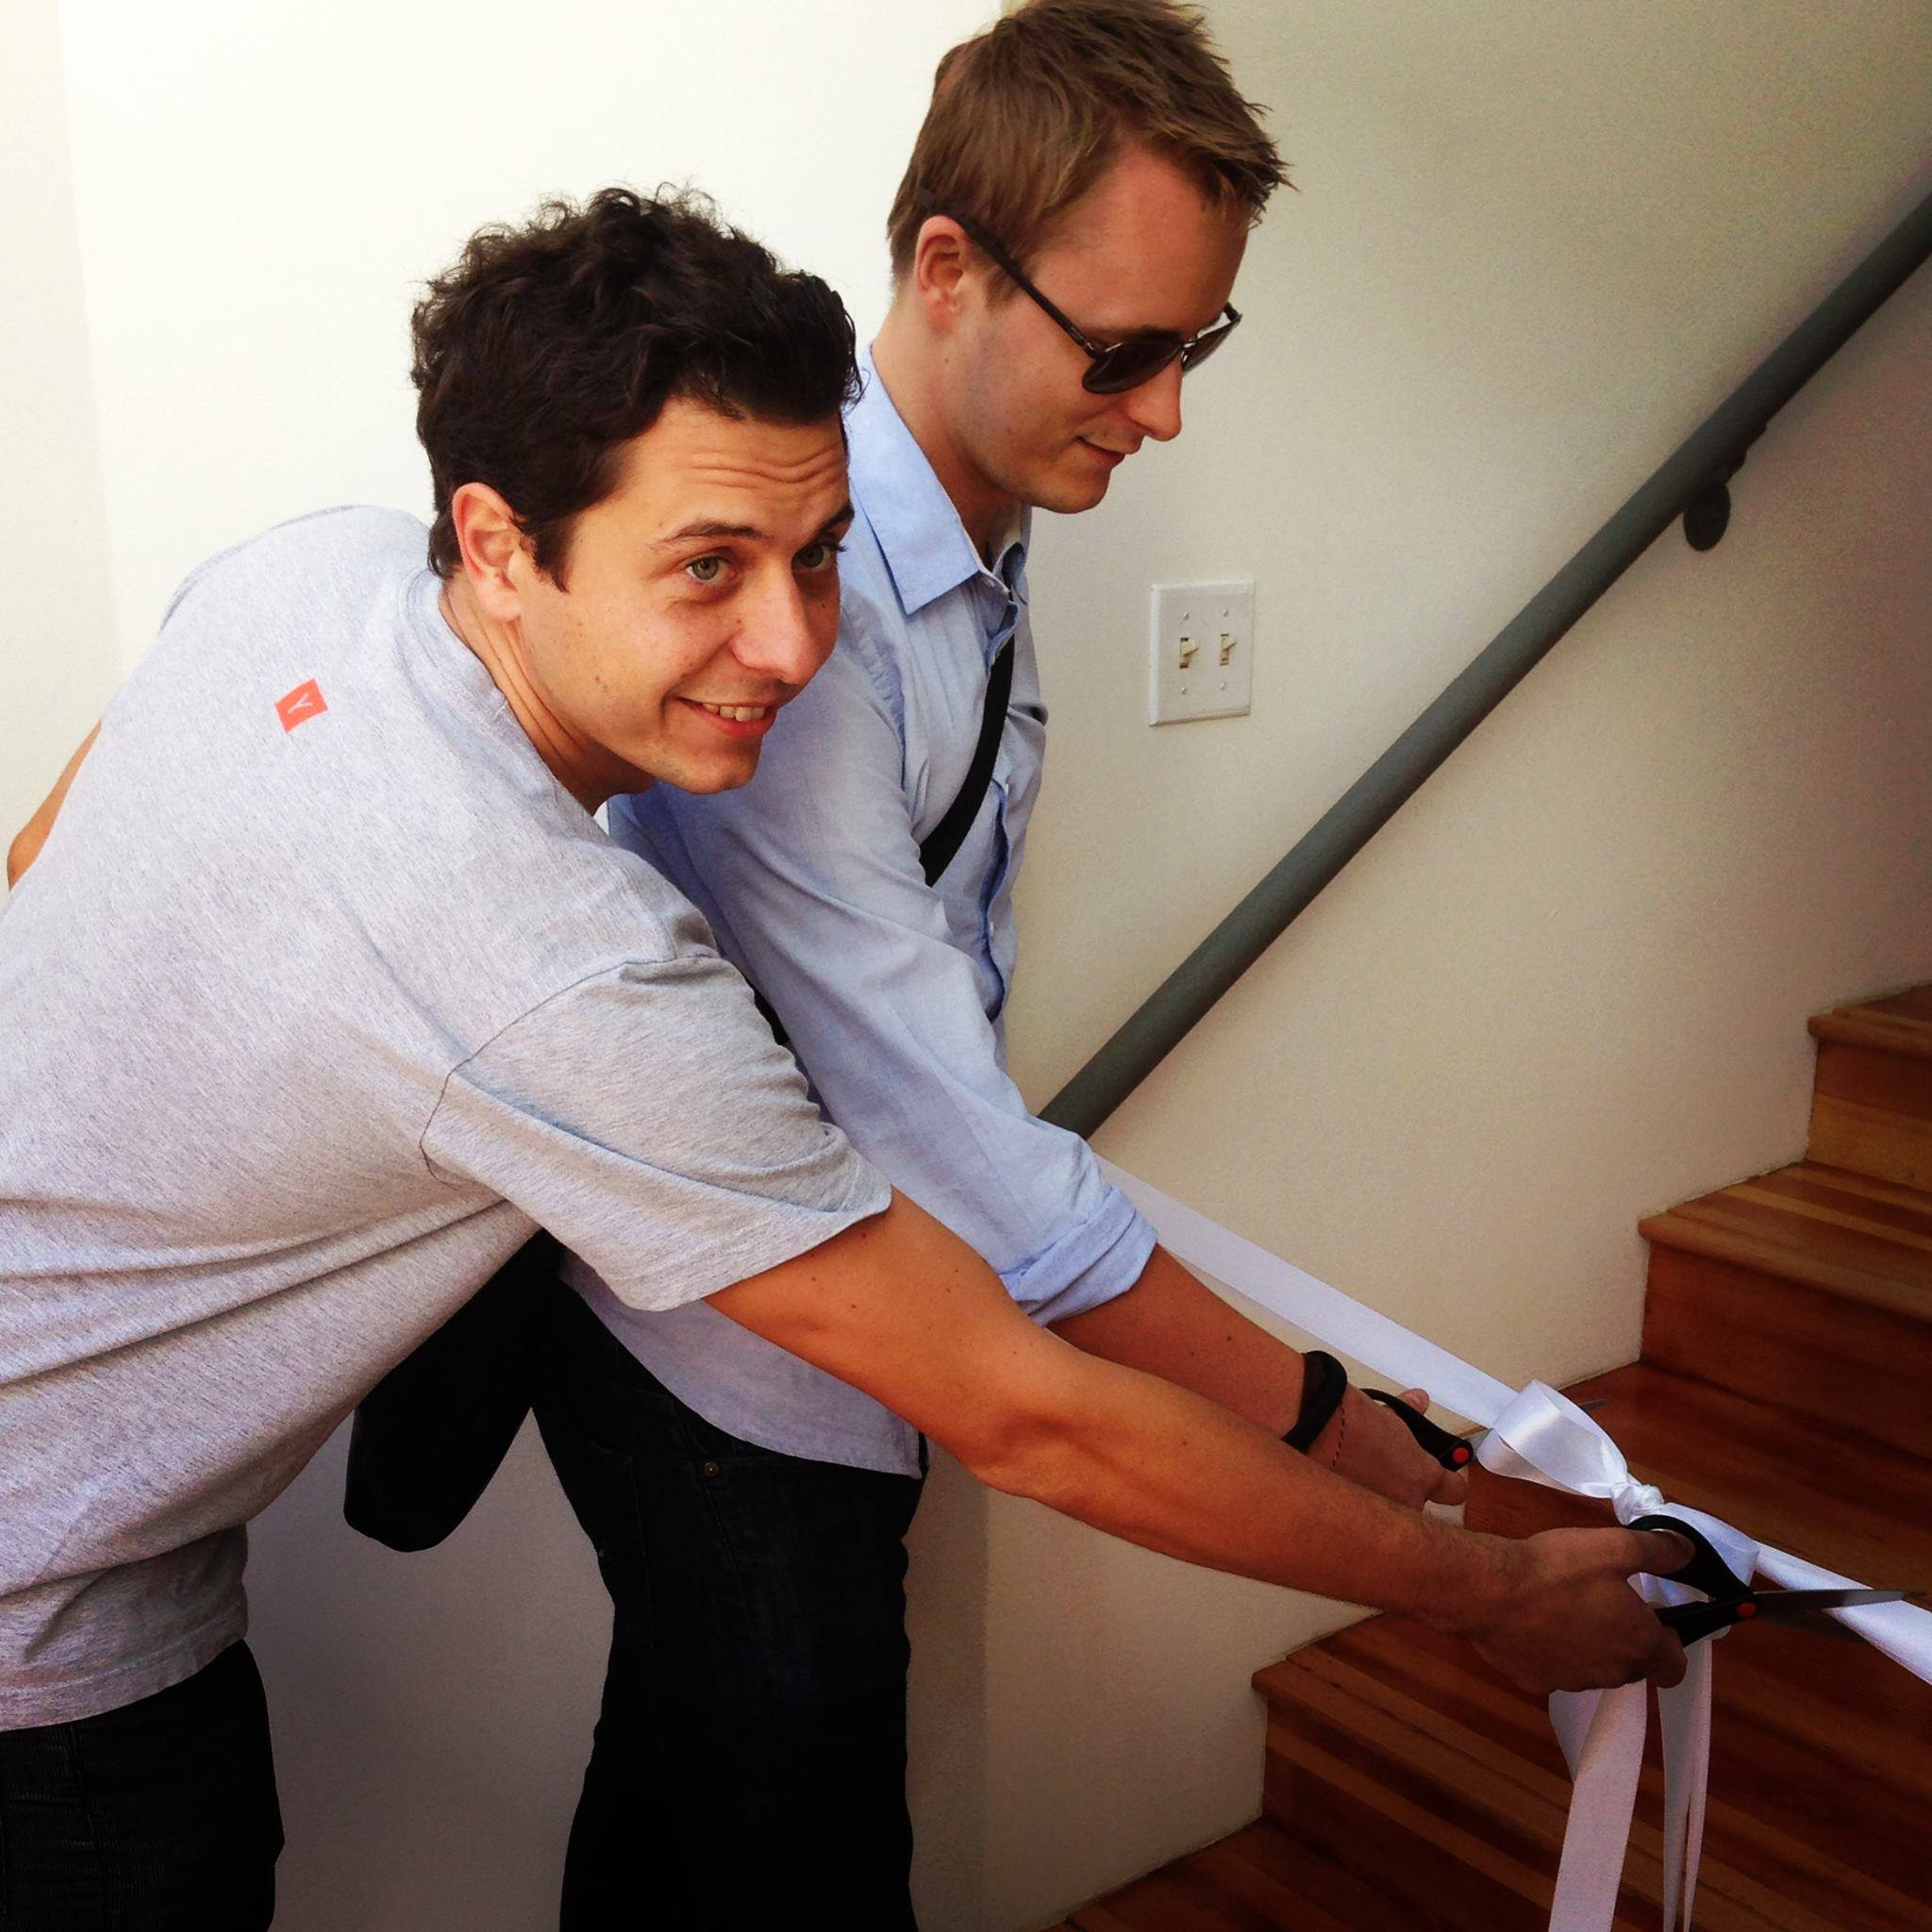 CEO Matt Mickiewicz and CTO Allan Grant cutting the ribbon to the new Hired office.